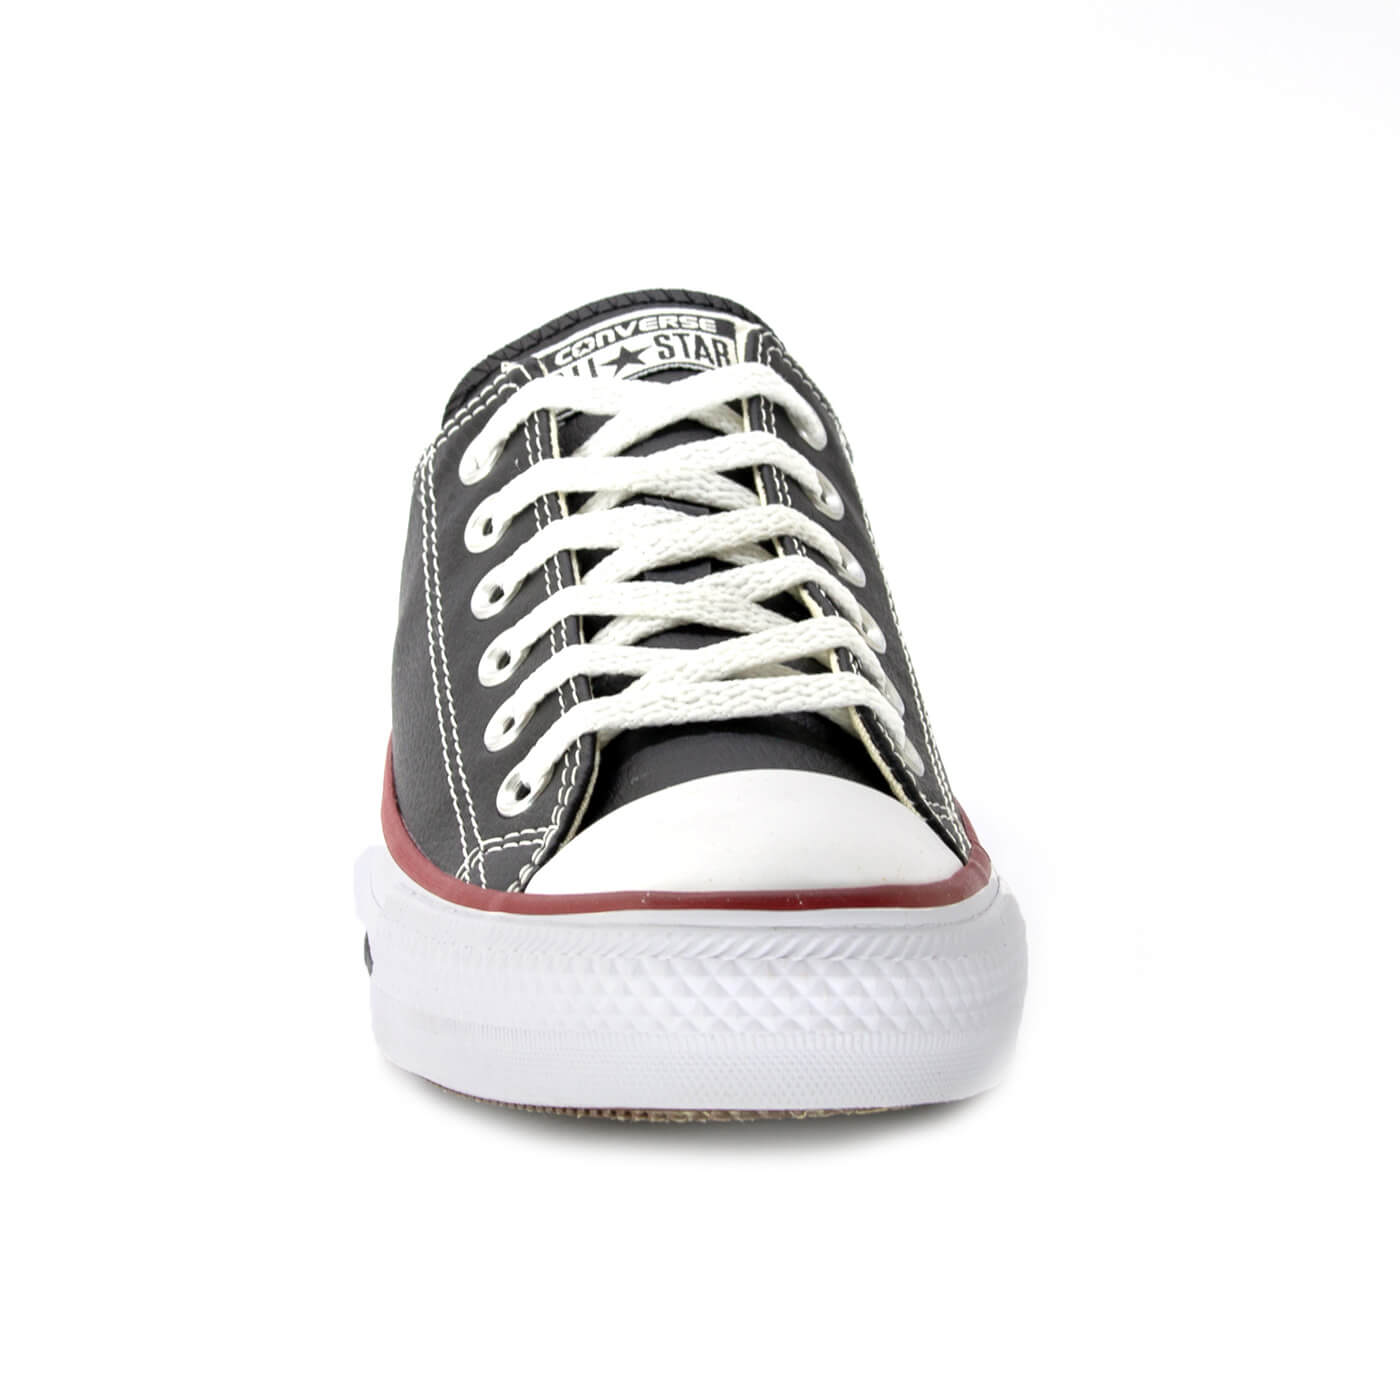 TENIS INFANTIL CONVERSE ALL STAR MALDEN COURO - CK0420